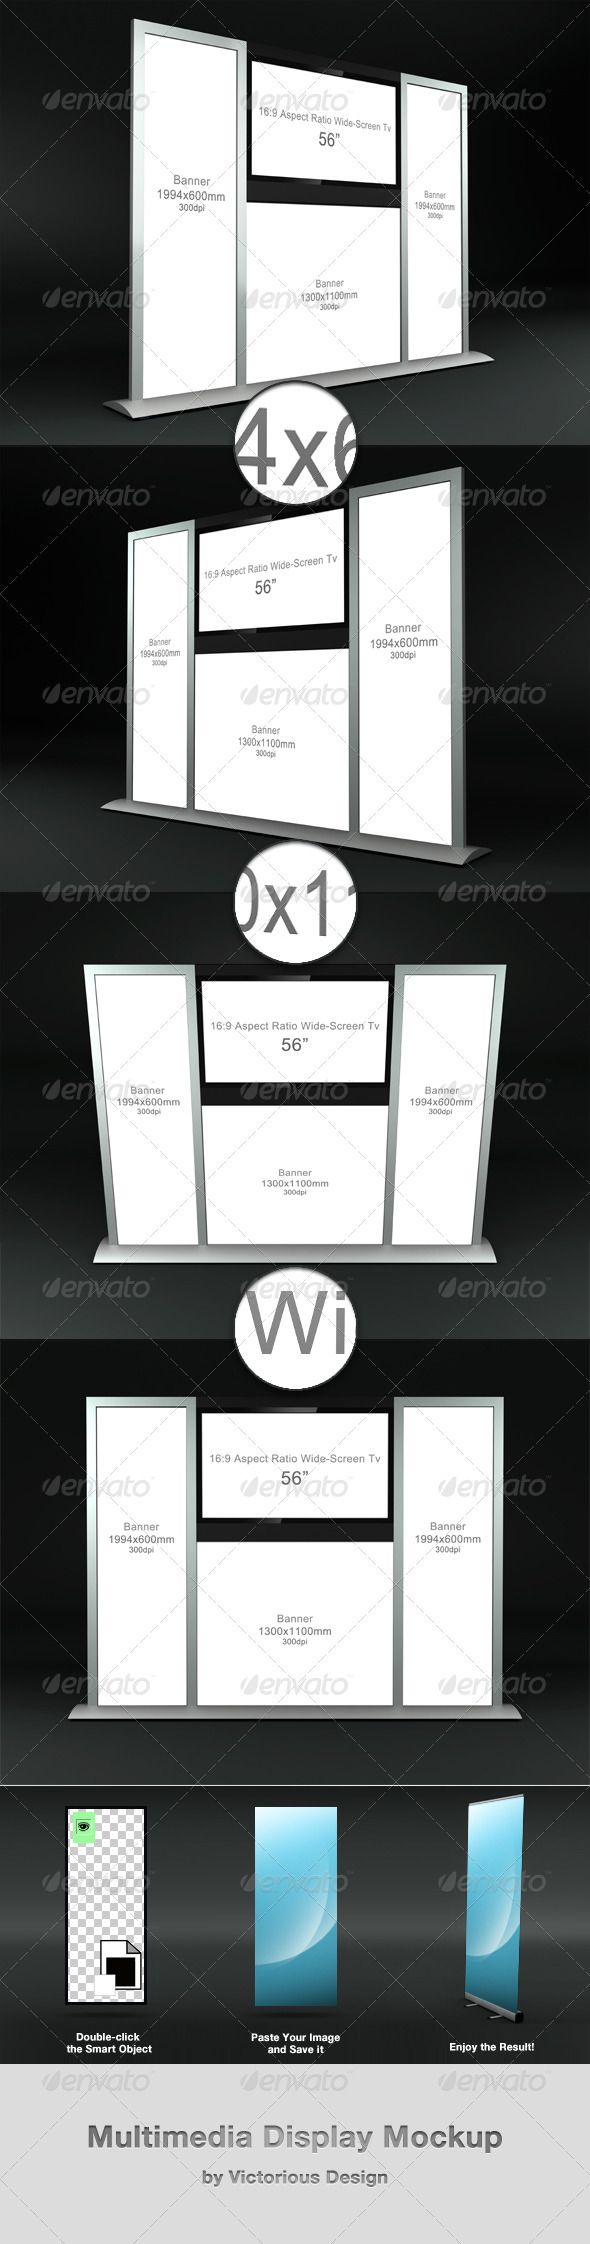 "Multimedia Display Mockup  #GraphicRiver         Multimedia Display Mockup is a great addition to any mockup collection.  	 It's easy to use and saves your time.  	 This package includes:  	 - 4 psd files with 4 different angles (5000×3800px)  	 - instructions  	 Active areas:  	 - Banner 1944×600mm (x2)  	 - Banner 1300×1100mm  	 - TV 56""  	 - Background is an integral part of the scene.     Created: 31August12 GraphicsFilesIncluded: PhotoshopPSD Layered: Yes MinimumAdobeCSVersion: CS5…"